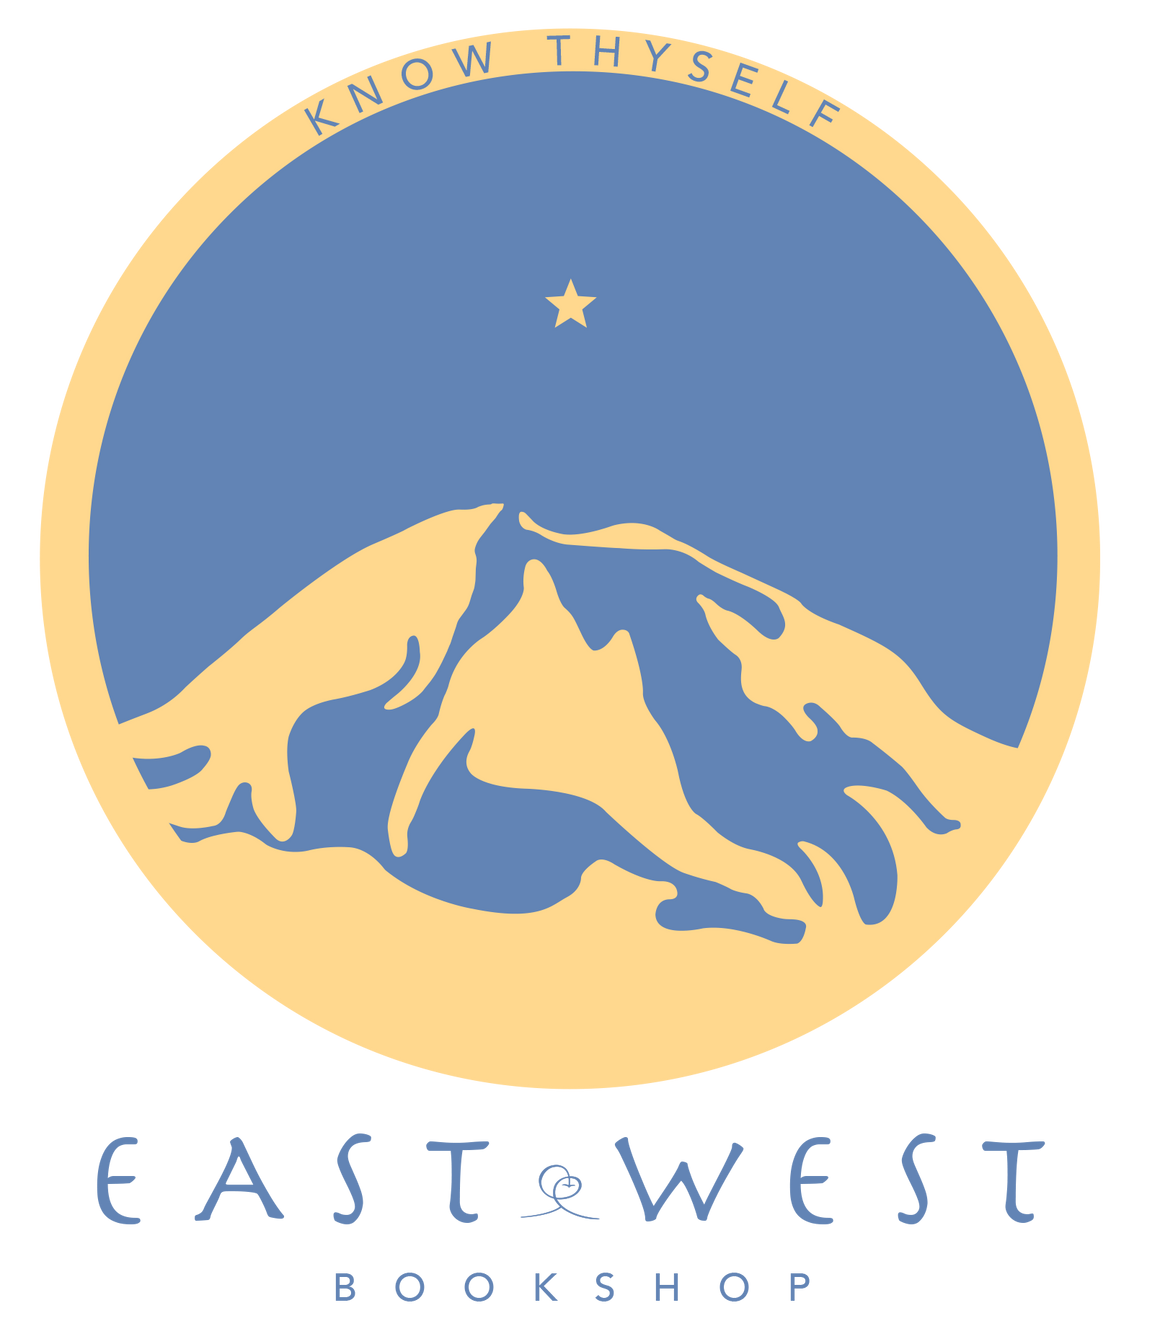 April 05, 2020 - Sunday 12-7pm - East West Angel Member Shopping Weekend - with East West